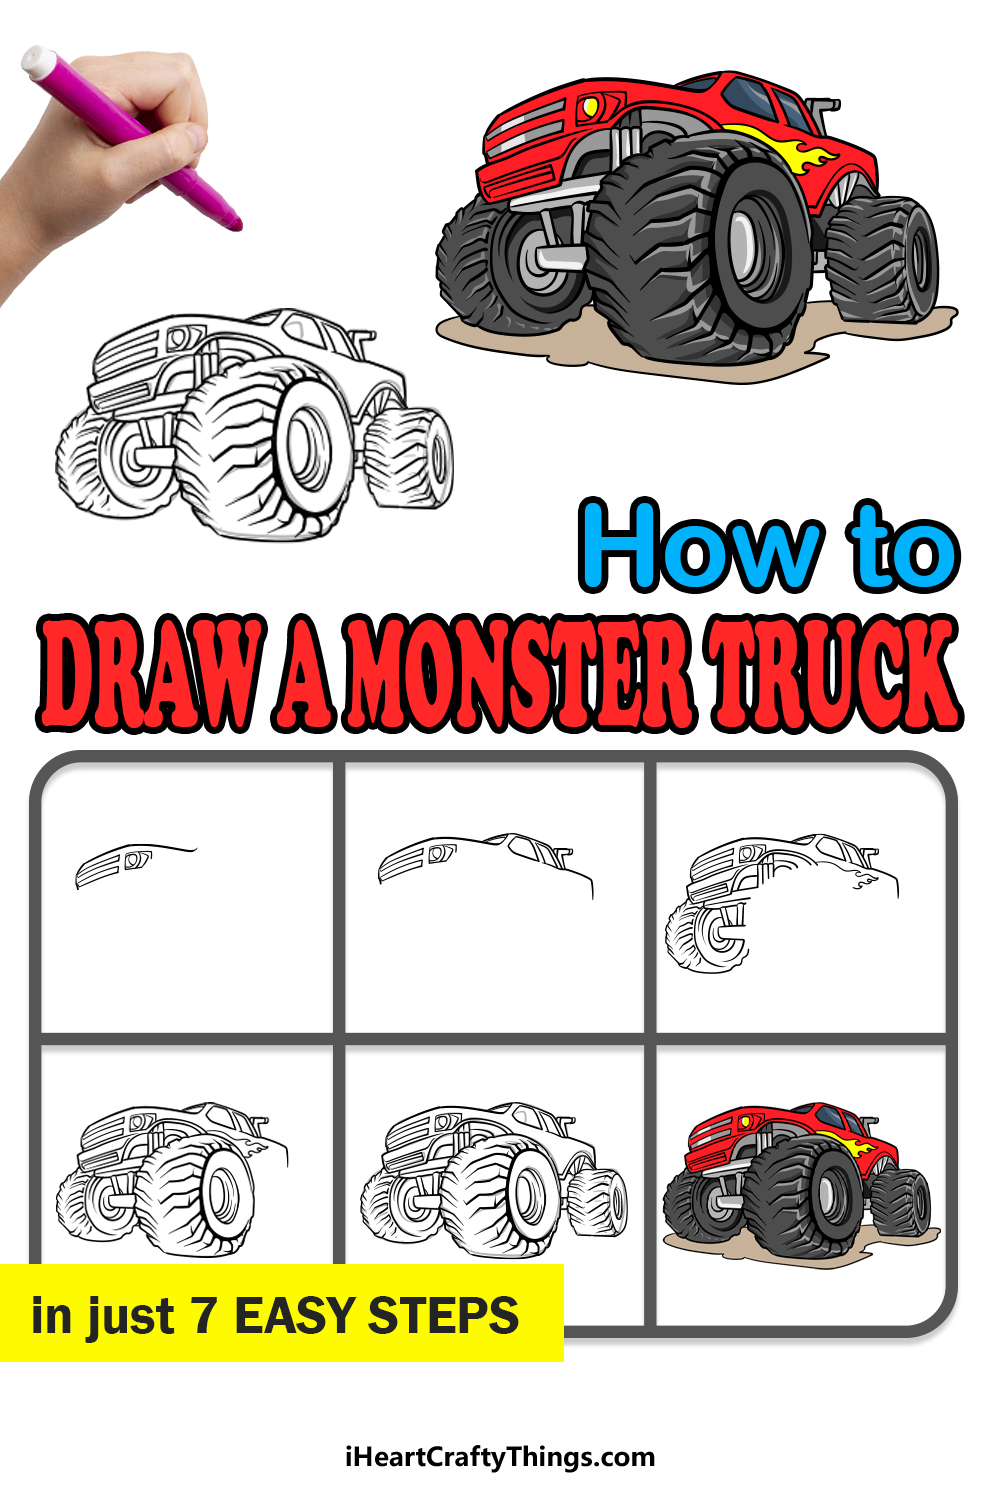 how to draw a monster truck in 7 easy steps